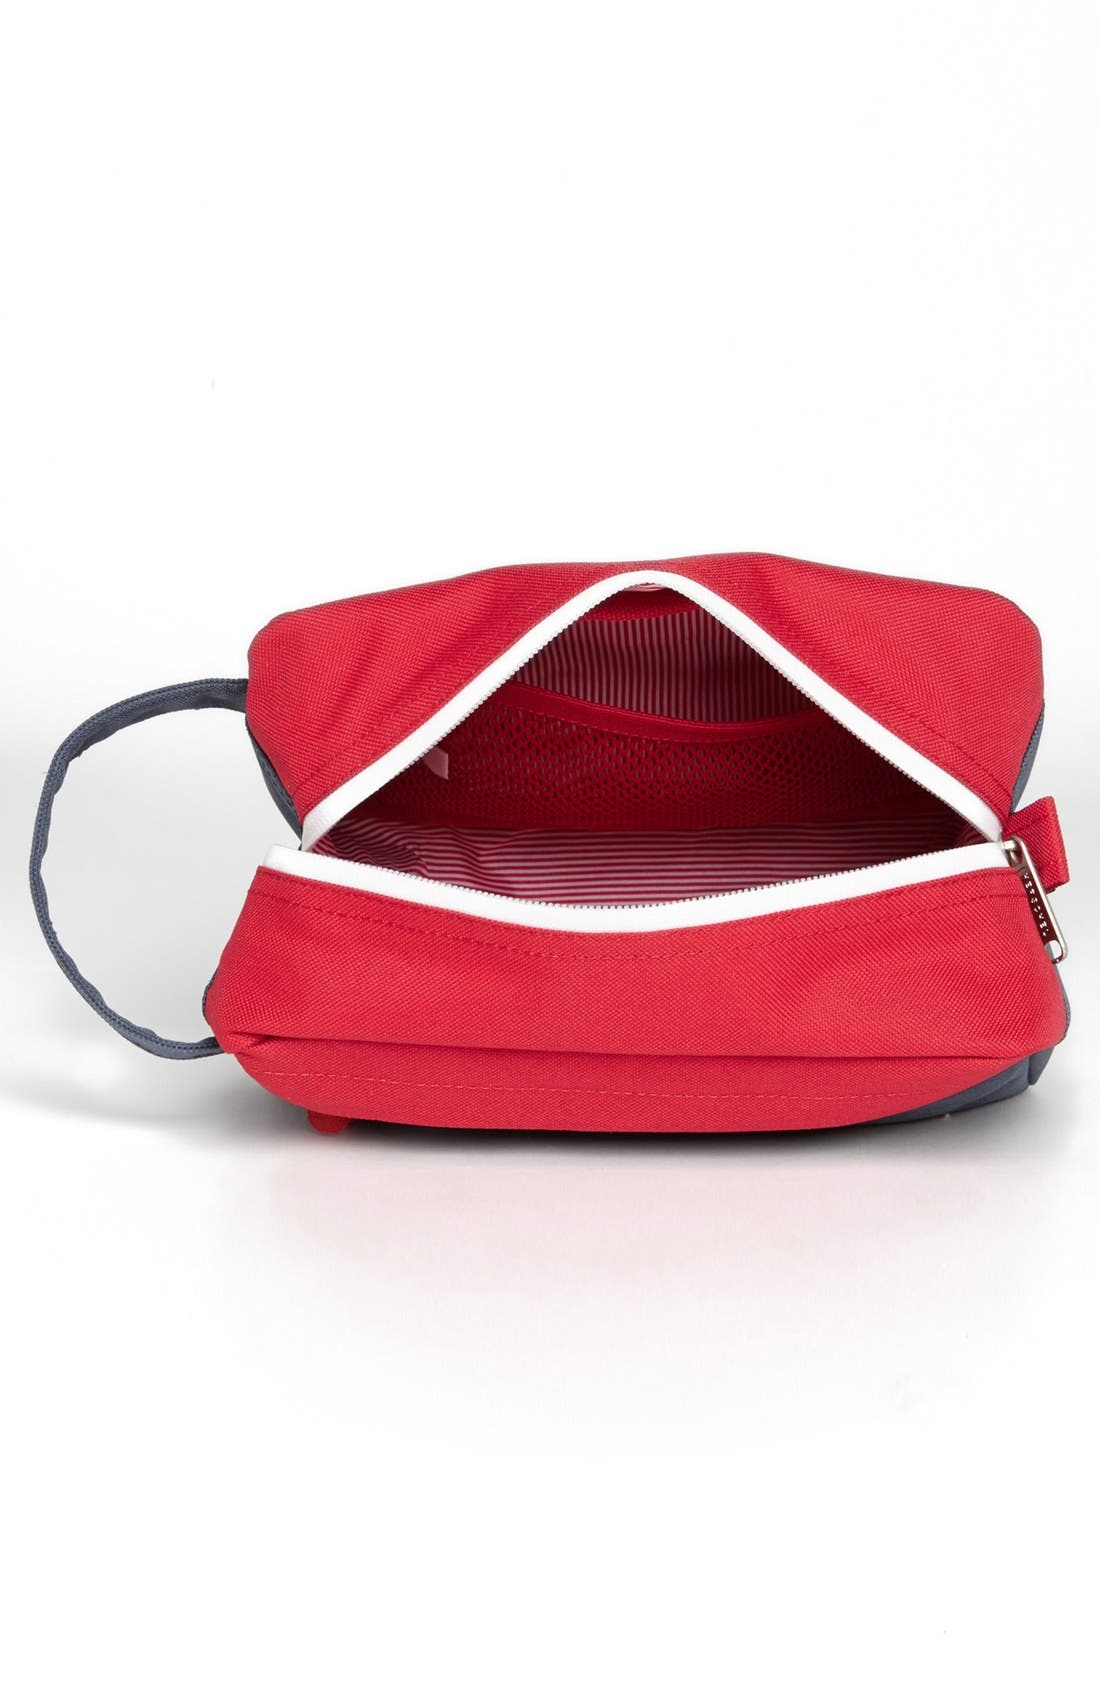 'Chapter' Toiletry Case,                             Alternate thumbnail 3, color,                             NAVY/ RED